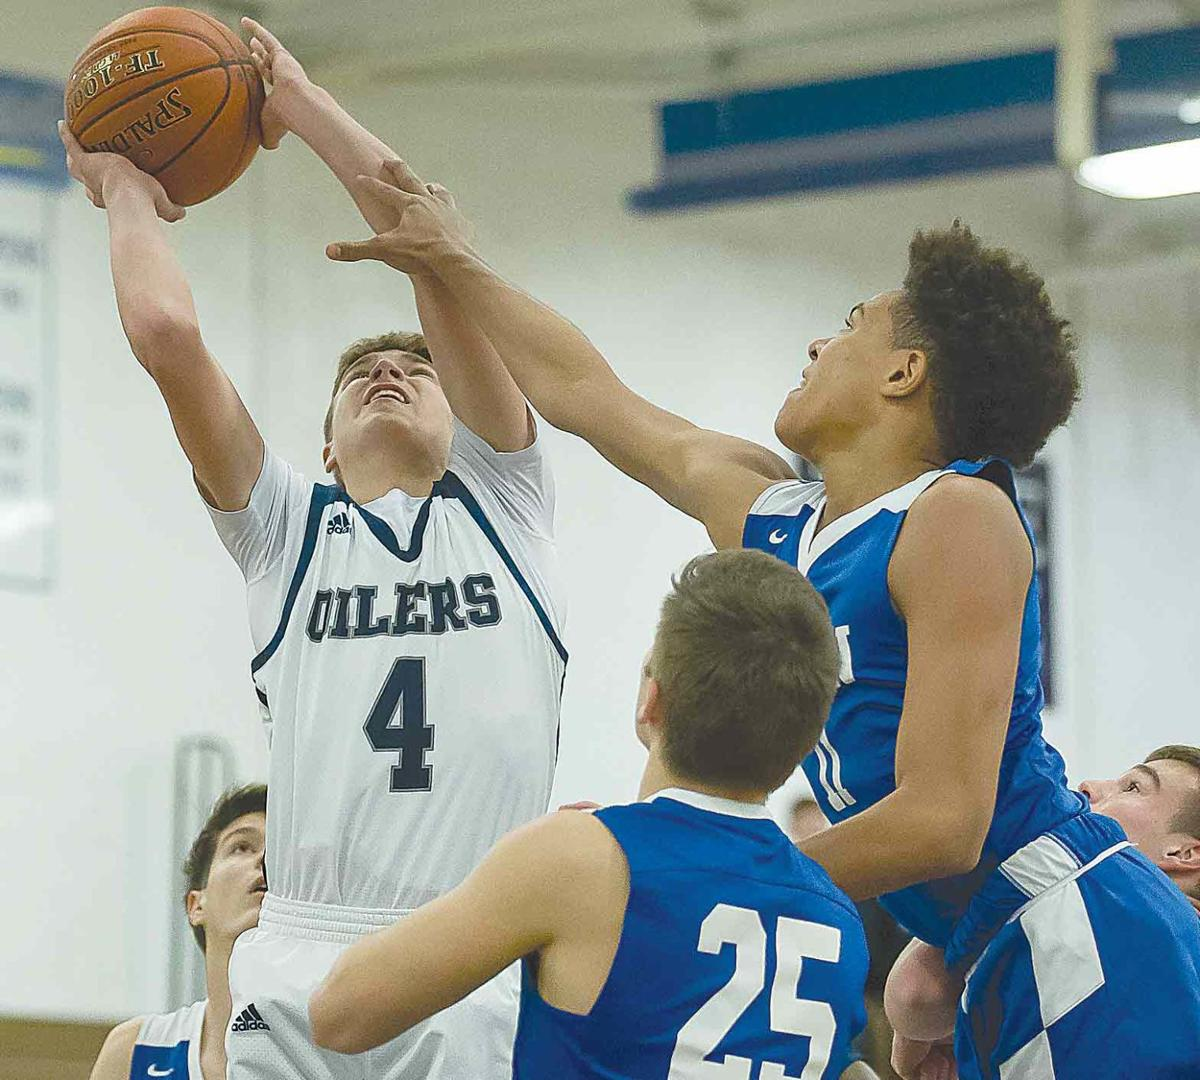 Oil City boys top Bison in R-6 play